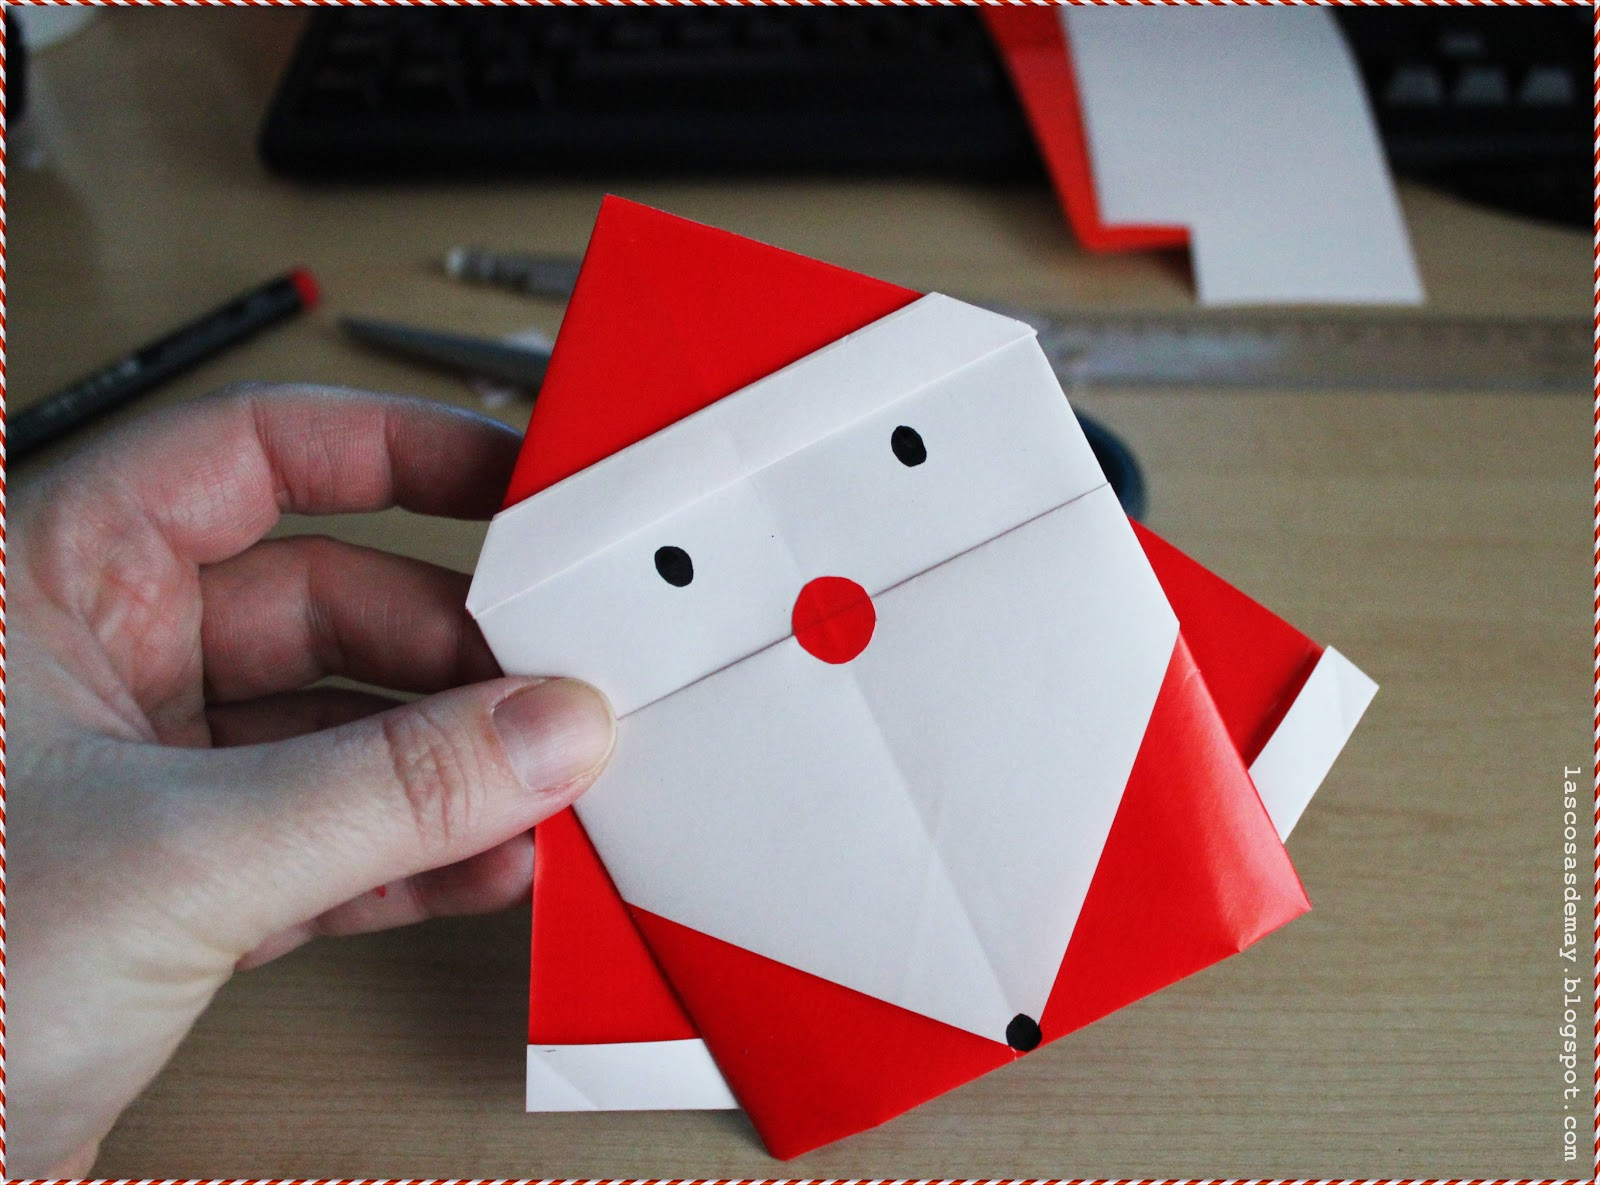 Origami santa claus 28 images create extremely for Make origami santa claus